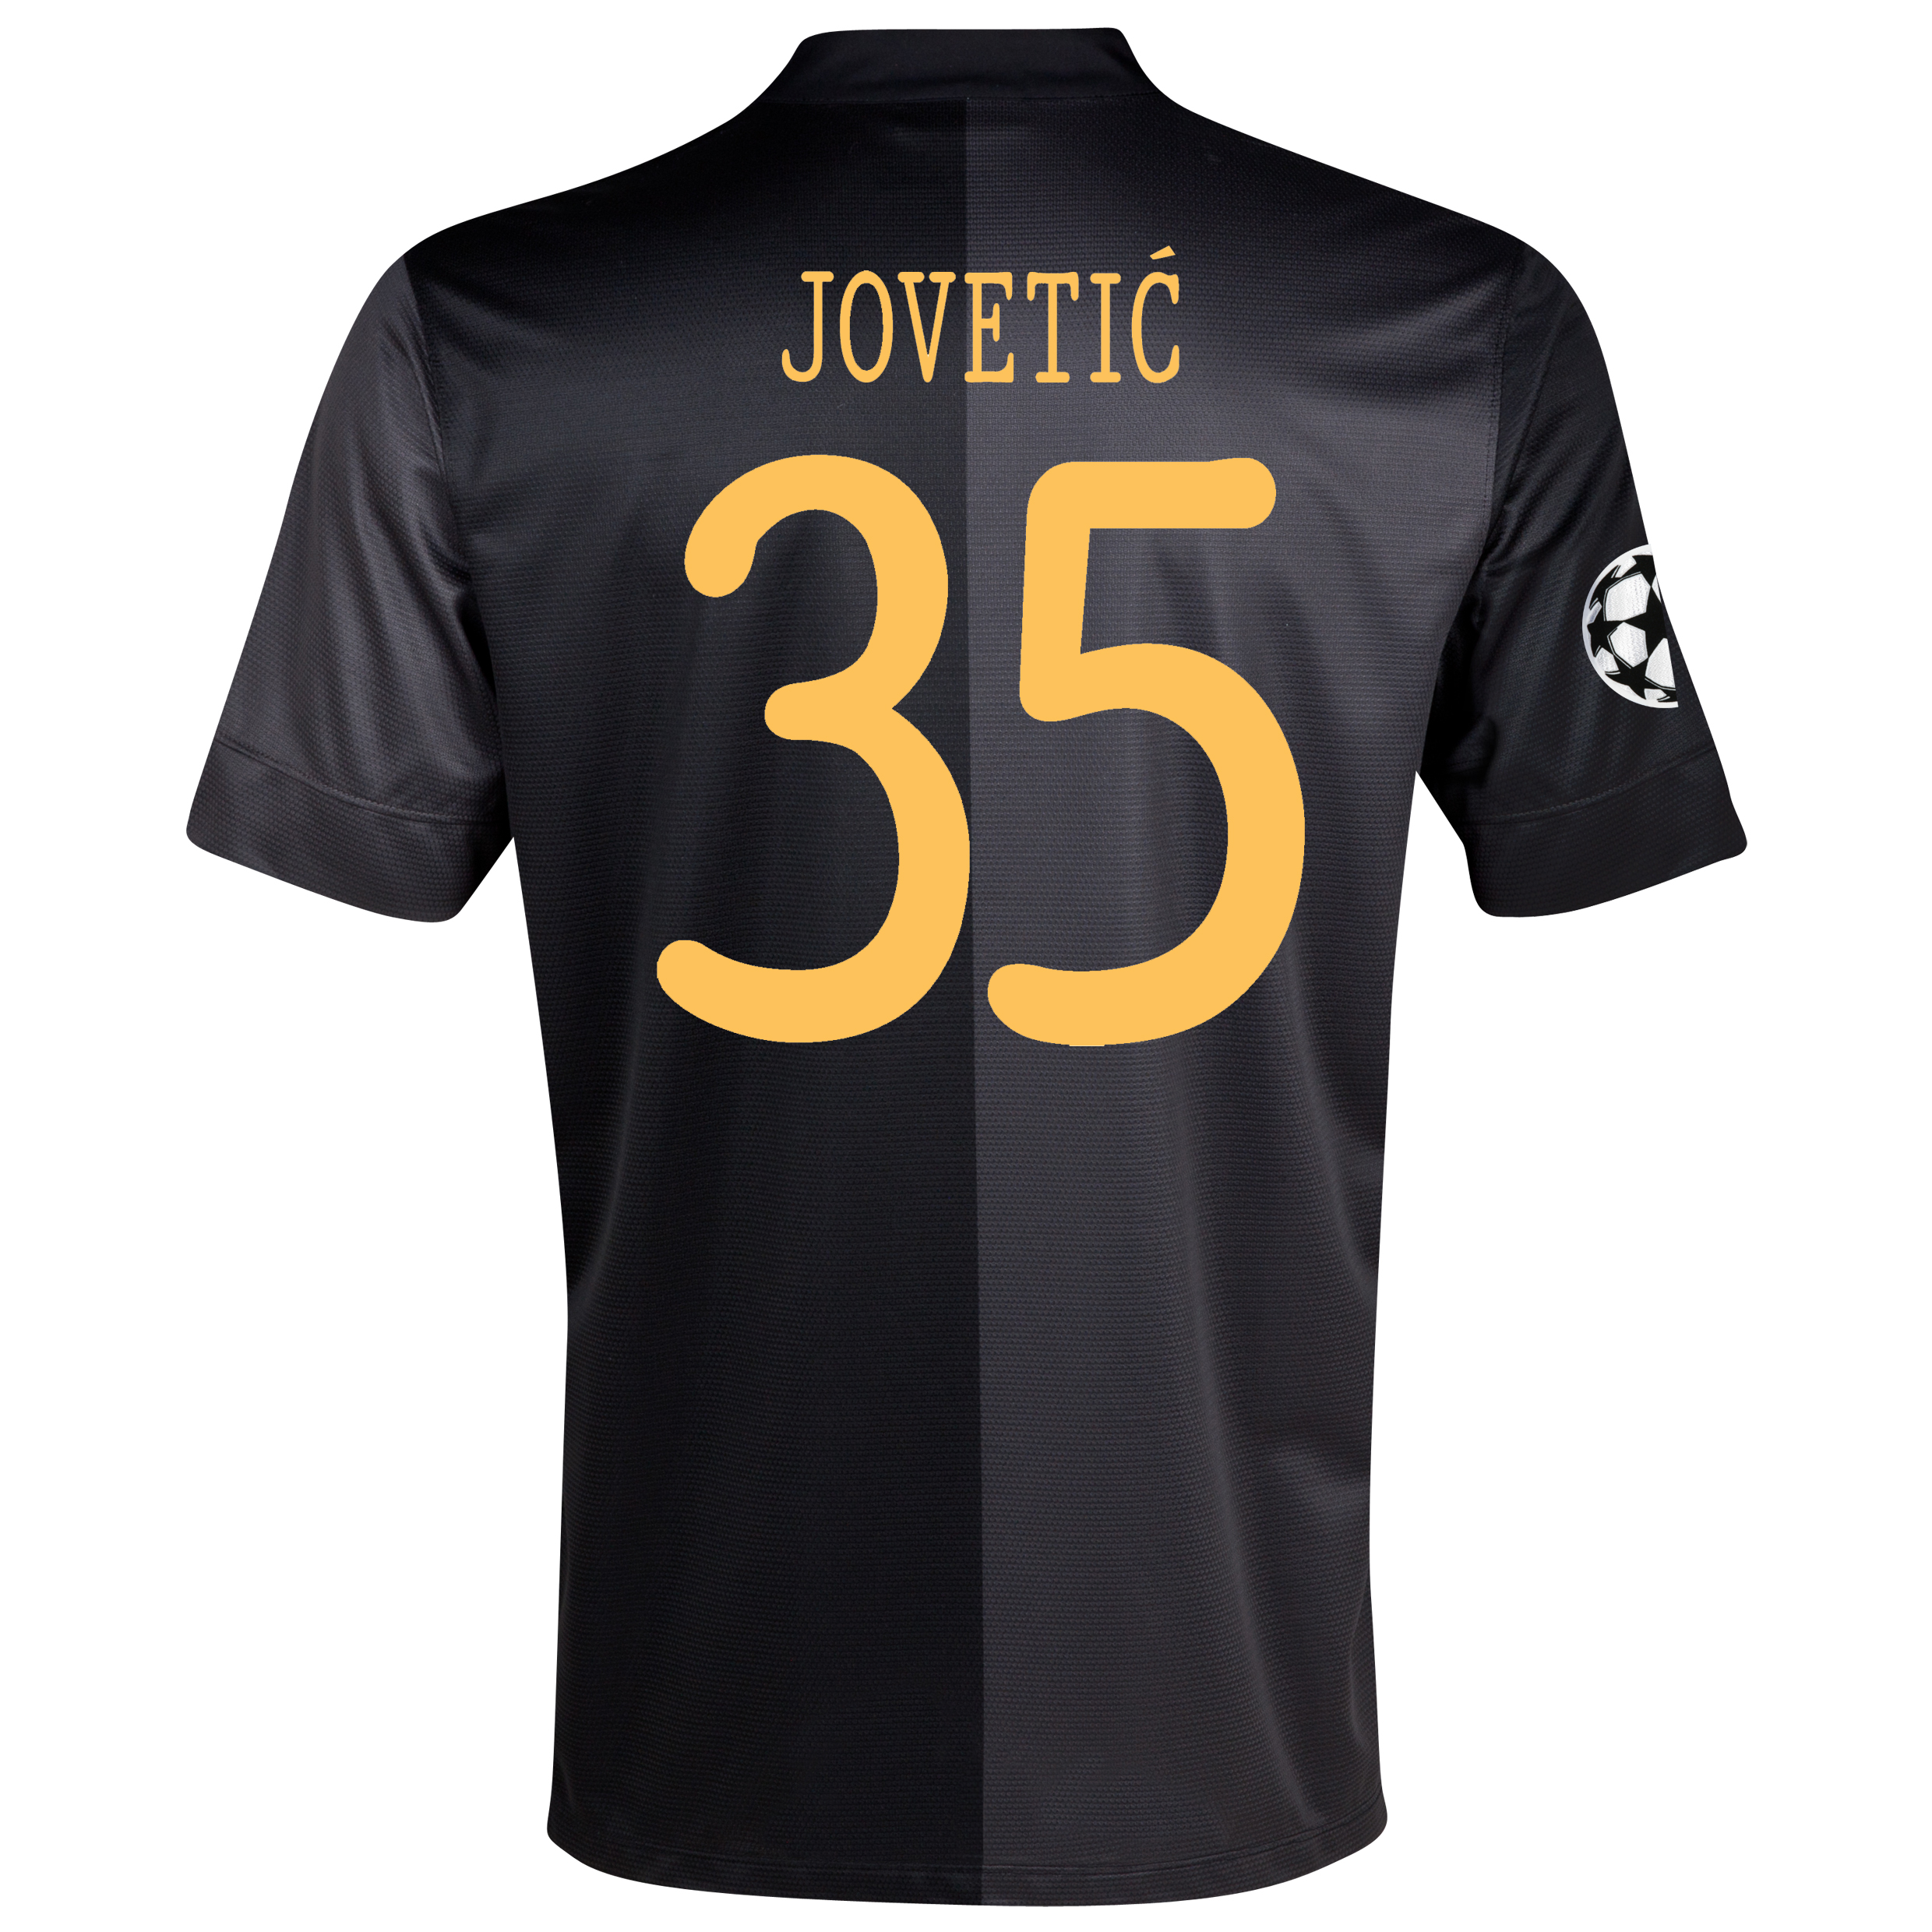 Manchester City UEFA Champions League Away Shirt 2013/14 with Jovetic 35 printing